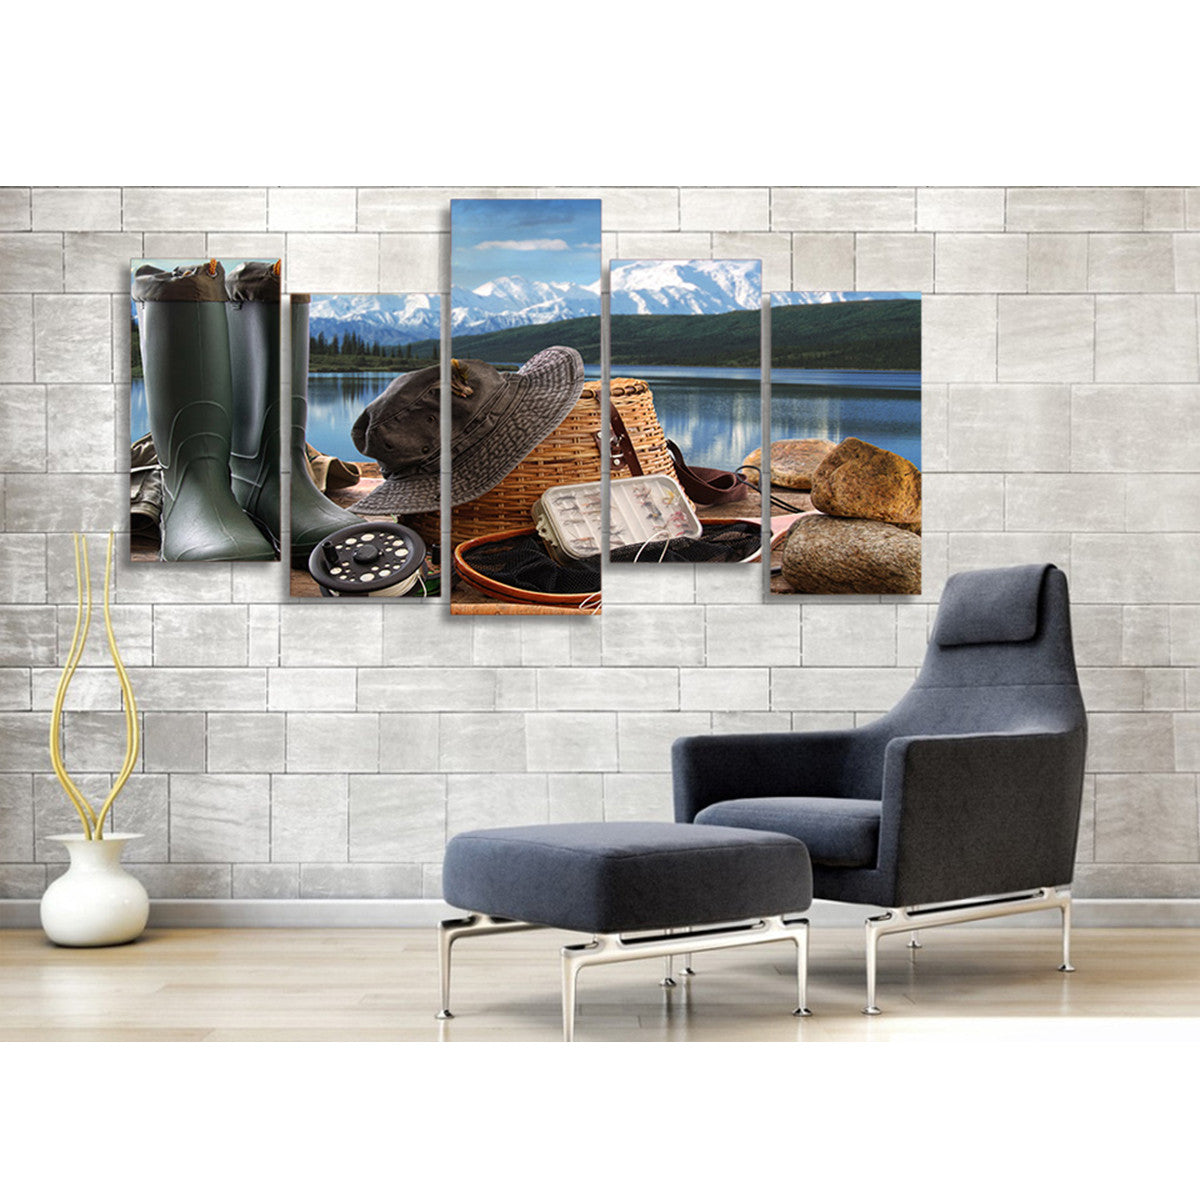 Fishing Gear 5 Piece Canvas